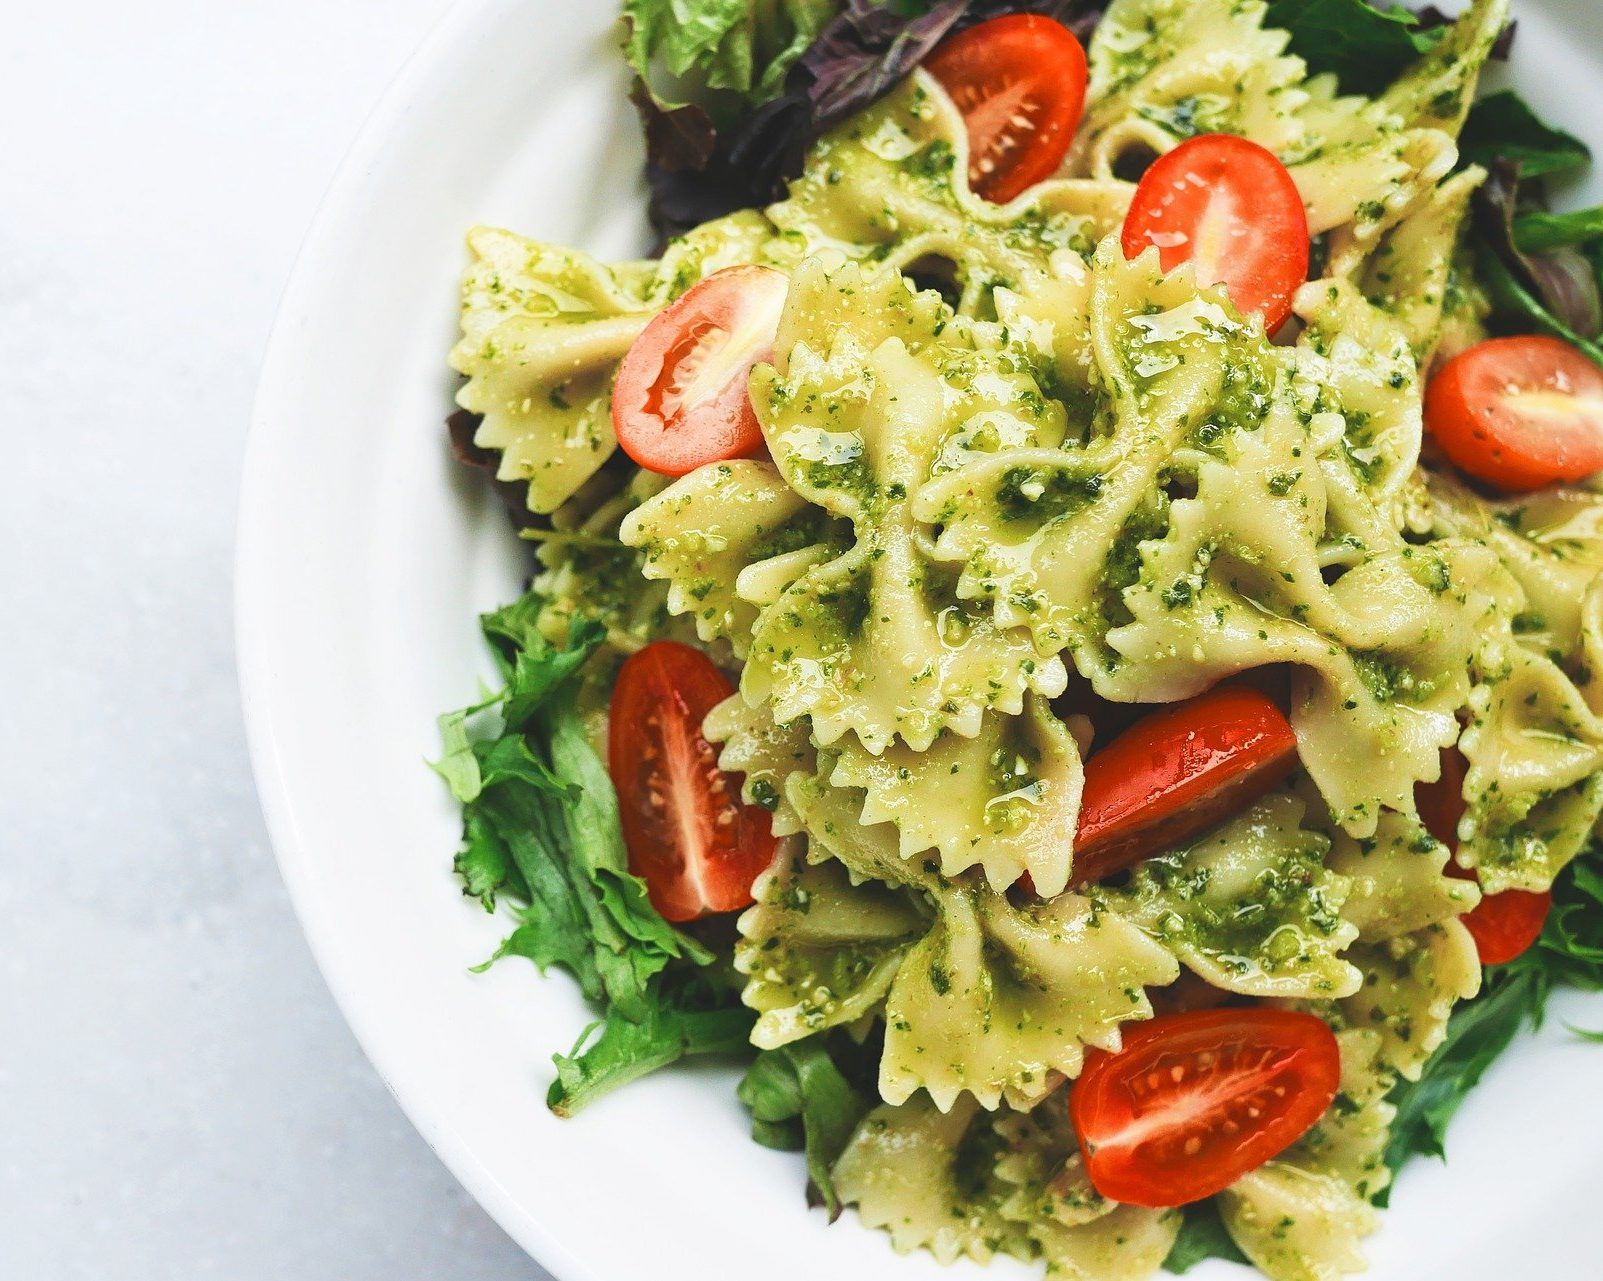 Pesto Pasta Salad with Cherry Tomatoes and Spinach